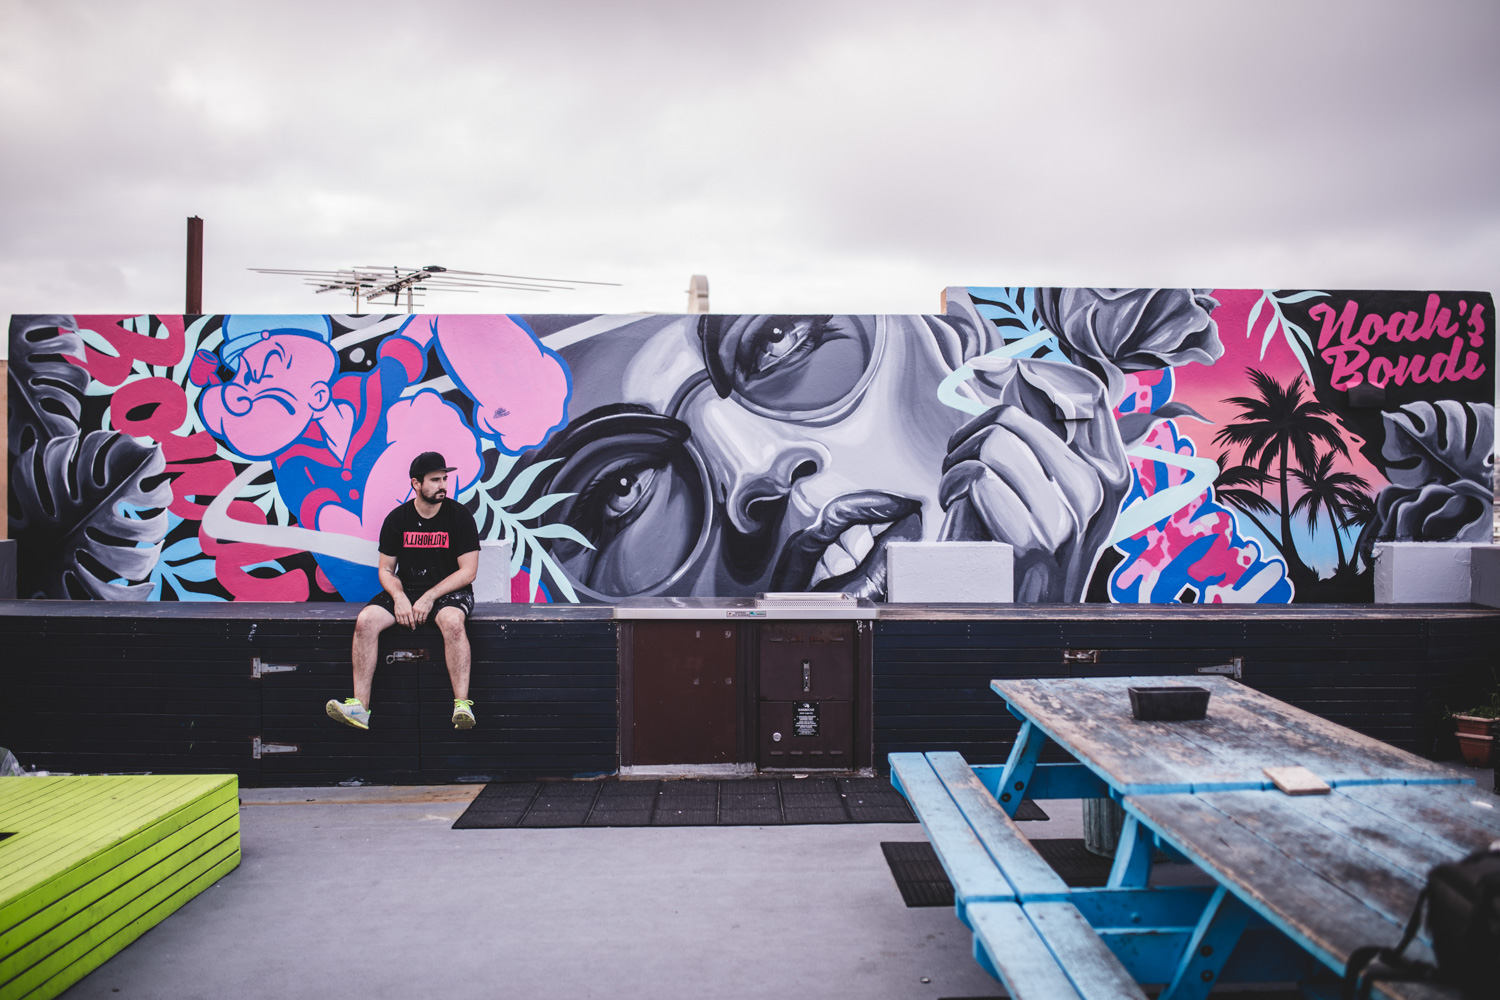 Noahs_Bondi_Beach__mural_art_Authority_Creative_LOW_RES5Noahs_Bondi_Beach__mural_art_Authority_Creative_LOW_RESA4869-2.jpg